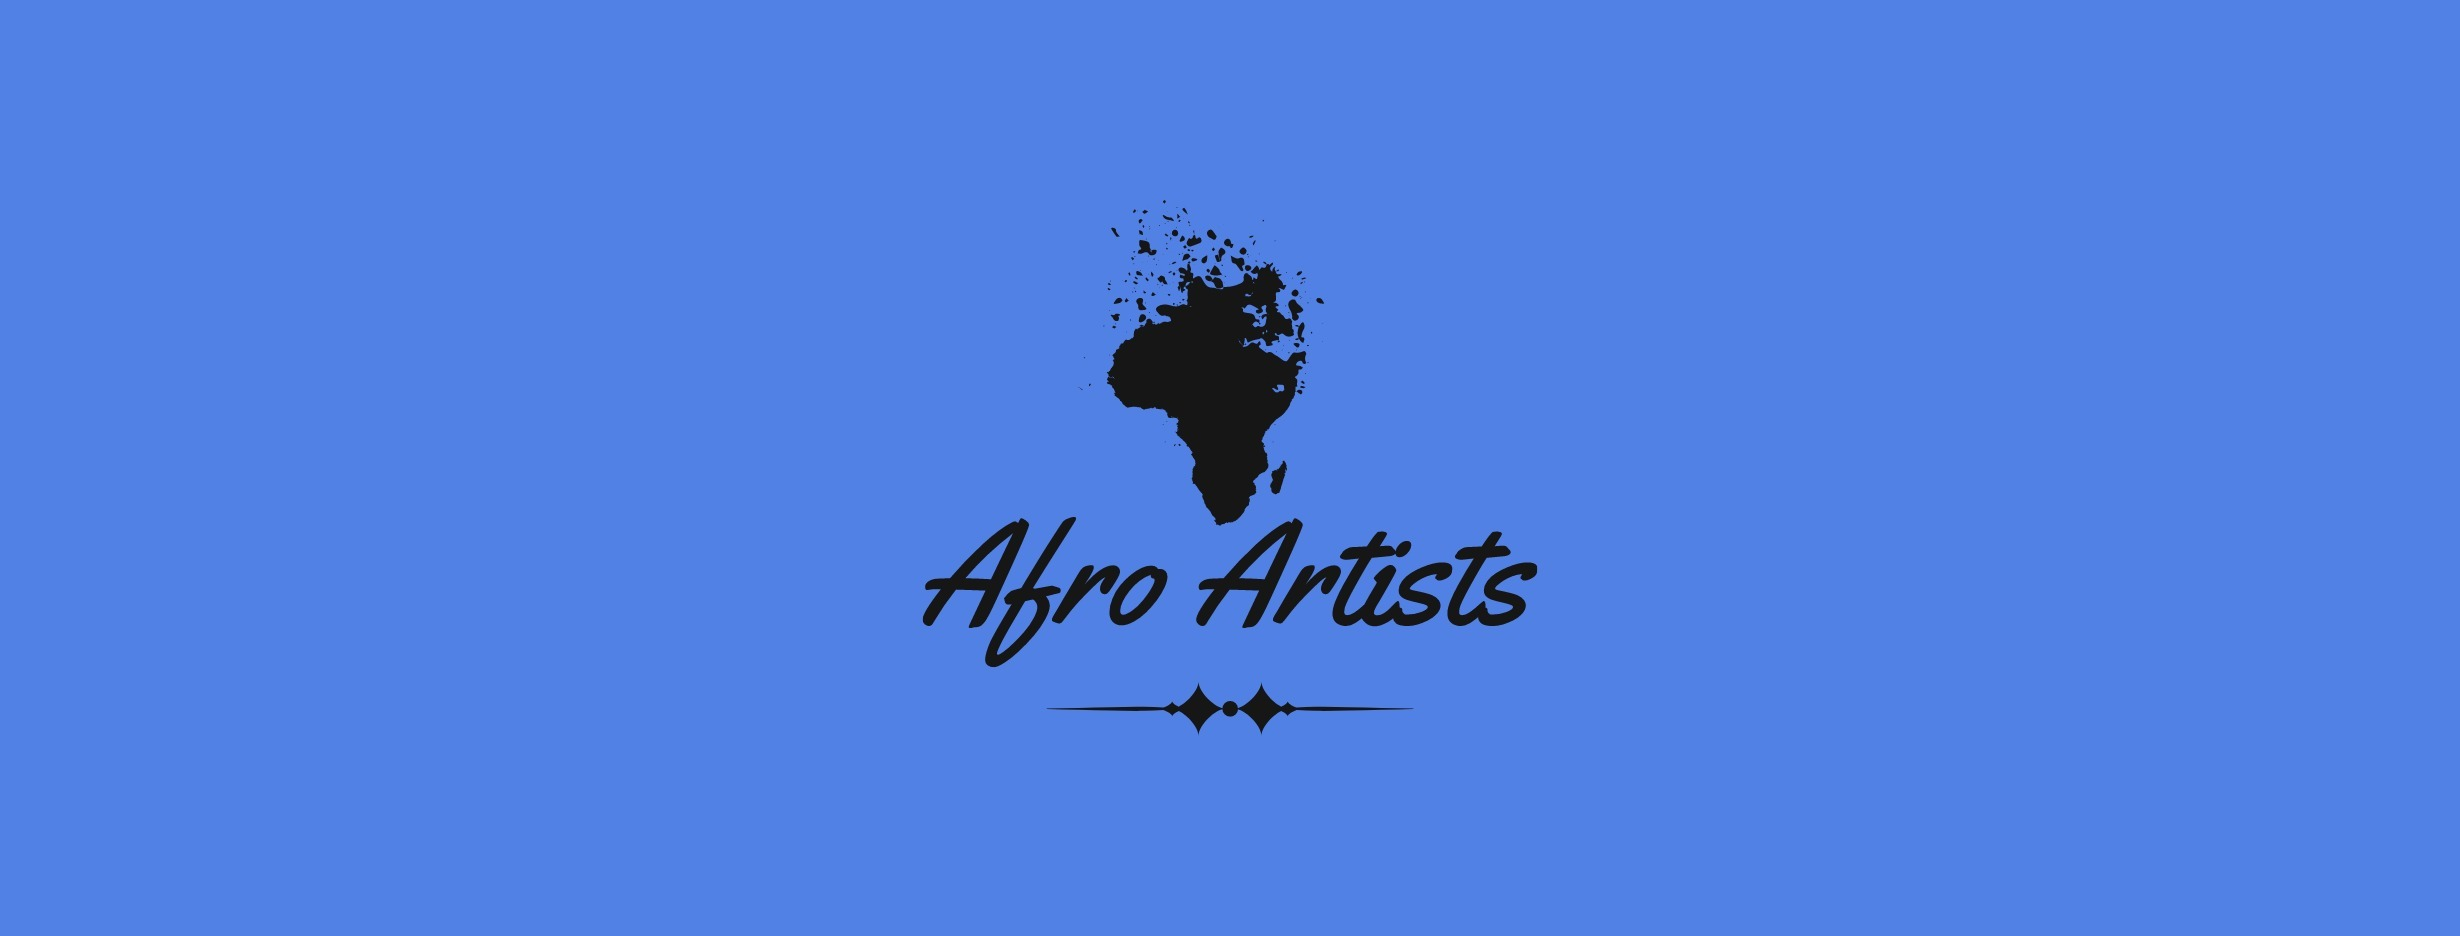 afroarists (@afroartists) Cover Image